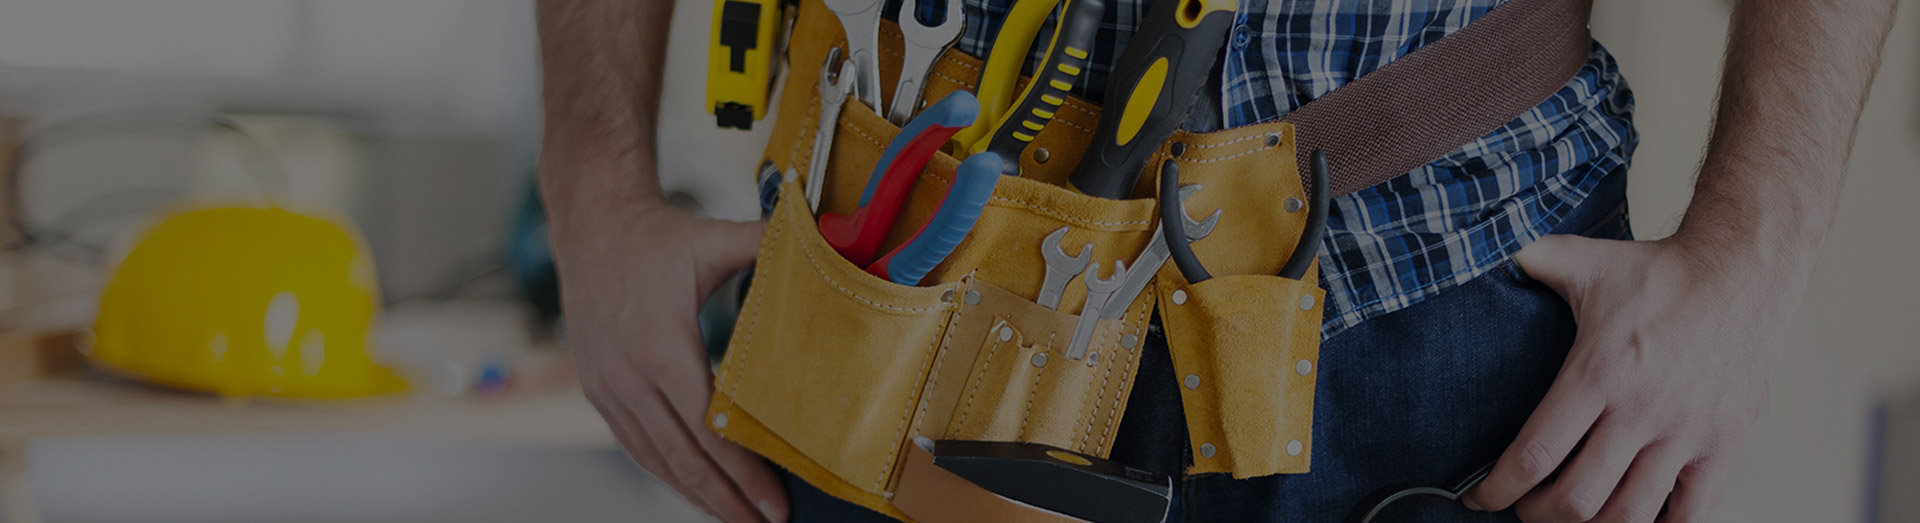 handyman Repair Services